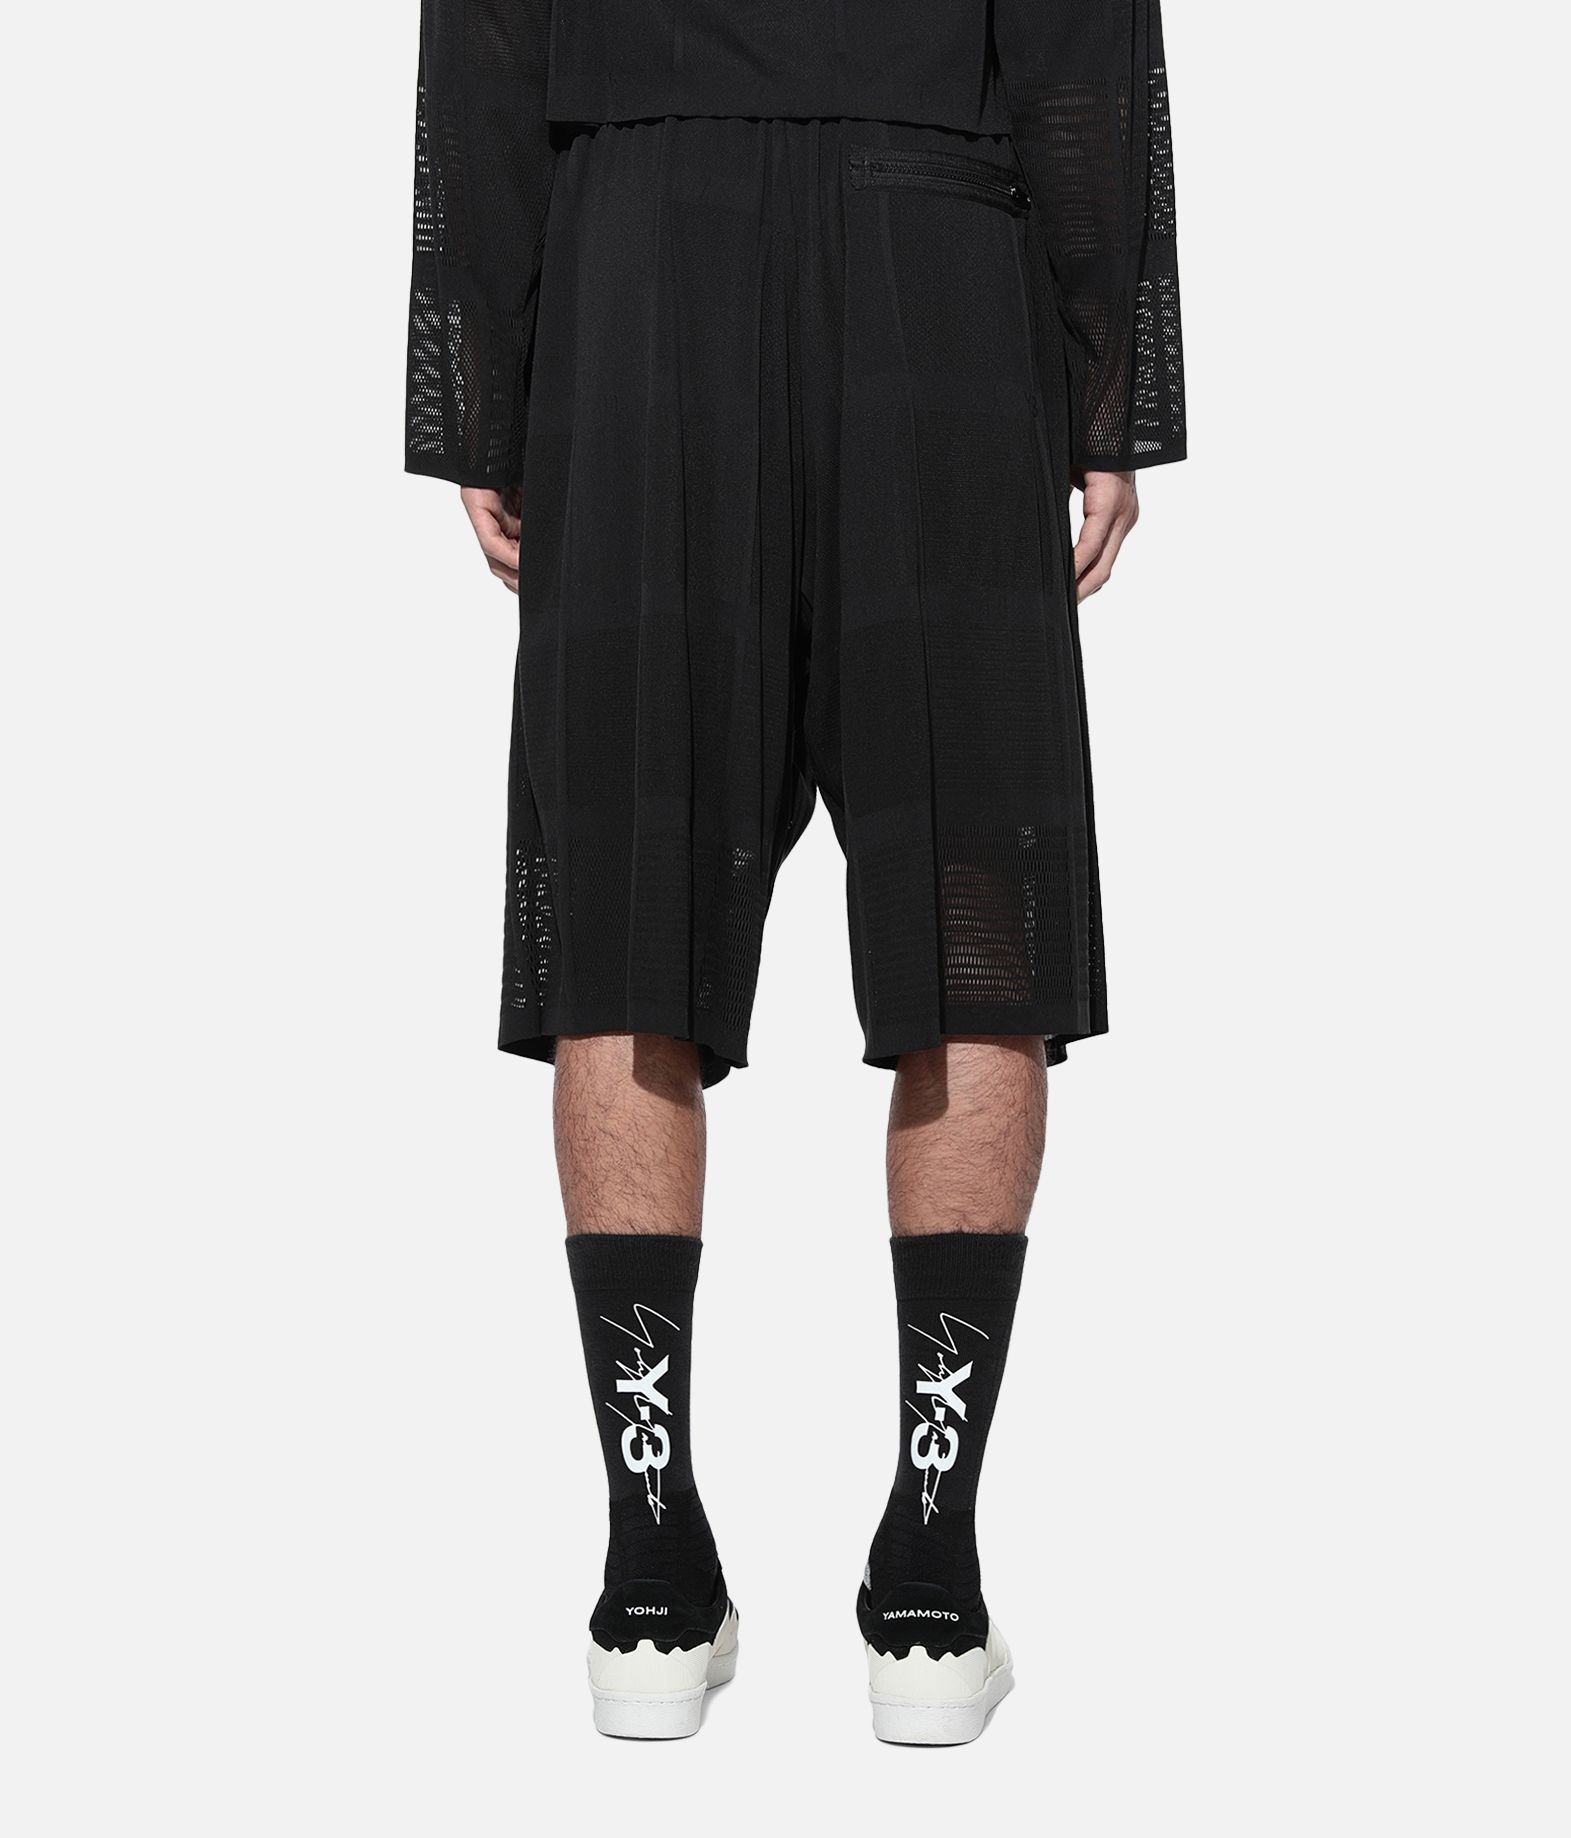 Y-3 Y-3 Patchwork Shorts Shorts Man d